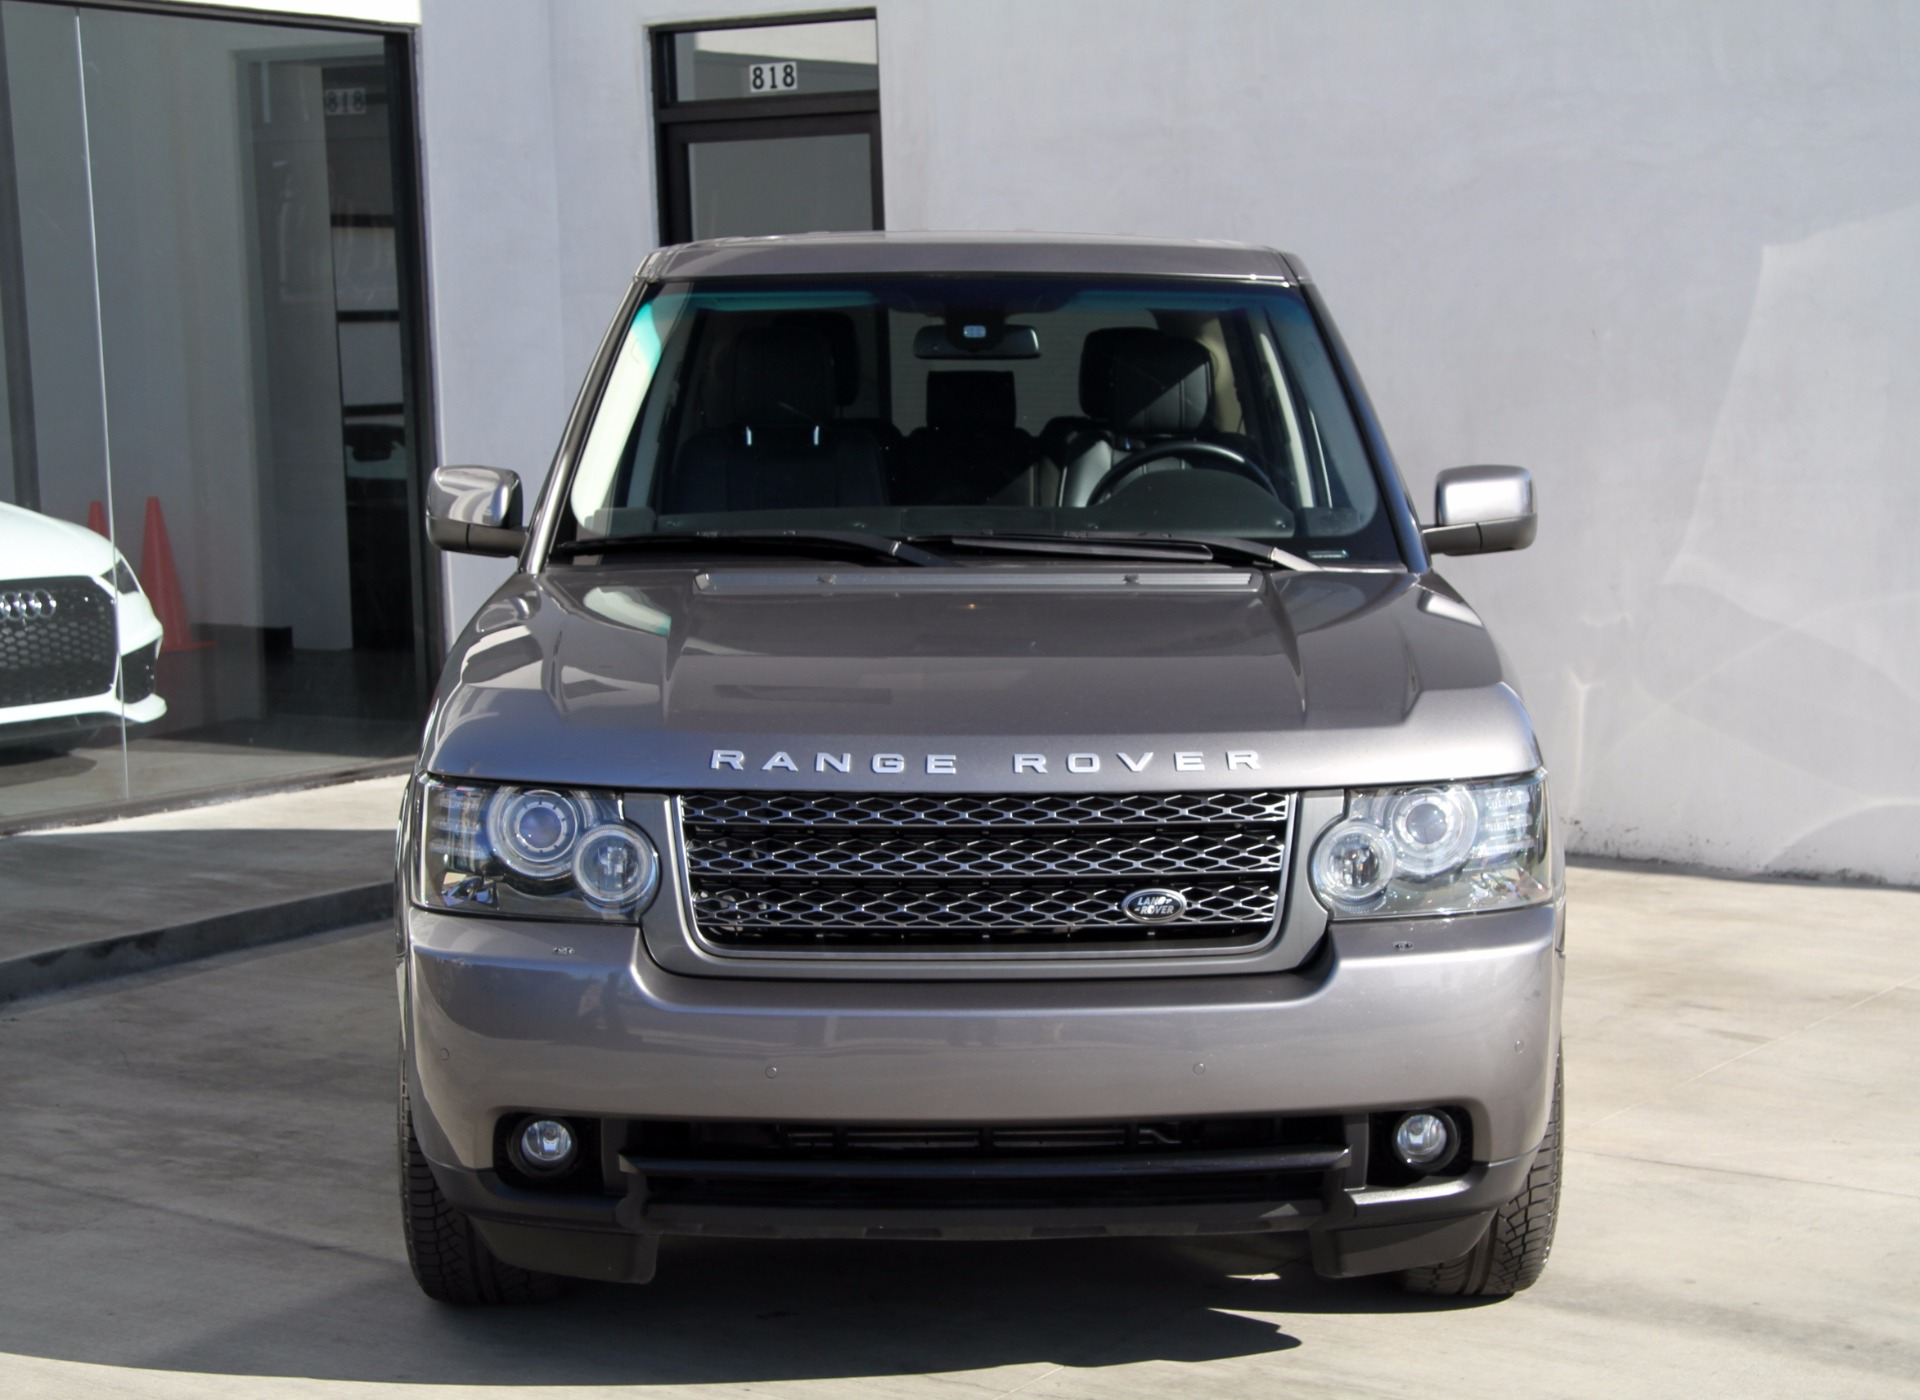 Land Rover For Sale Near Me >> 2011 Land Rover Range Rover HSE LUXURY Stock # 6048 for ...